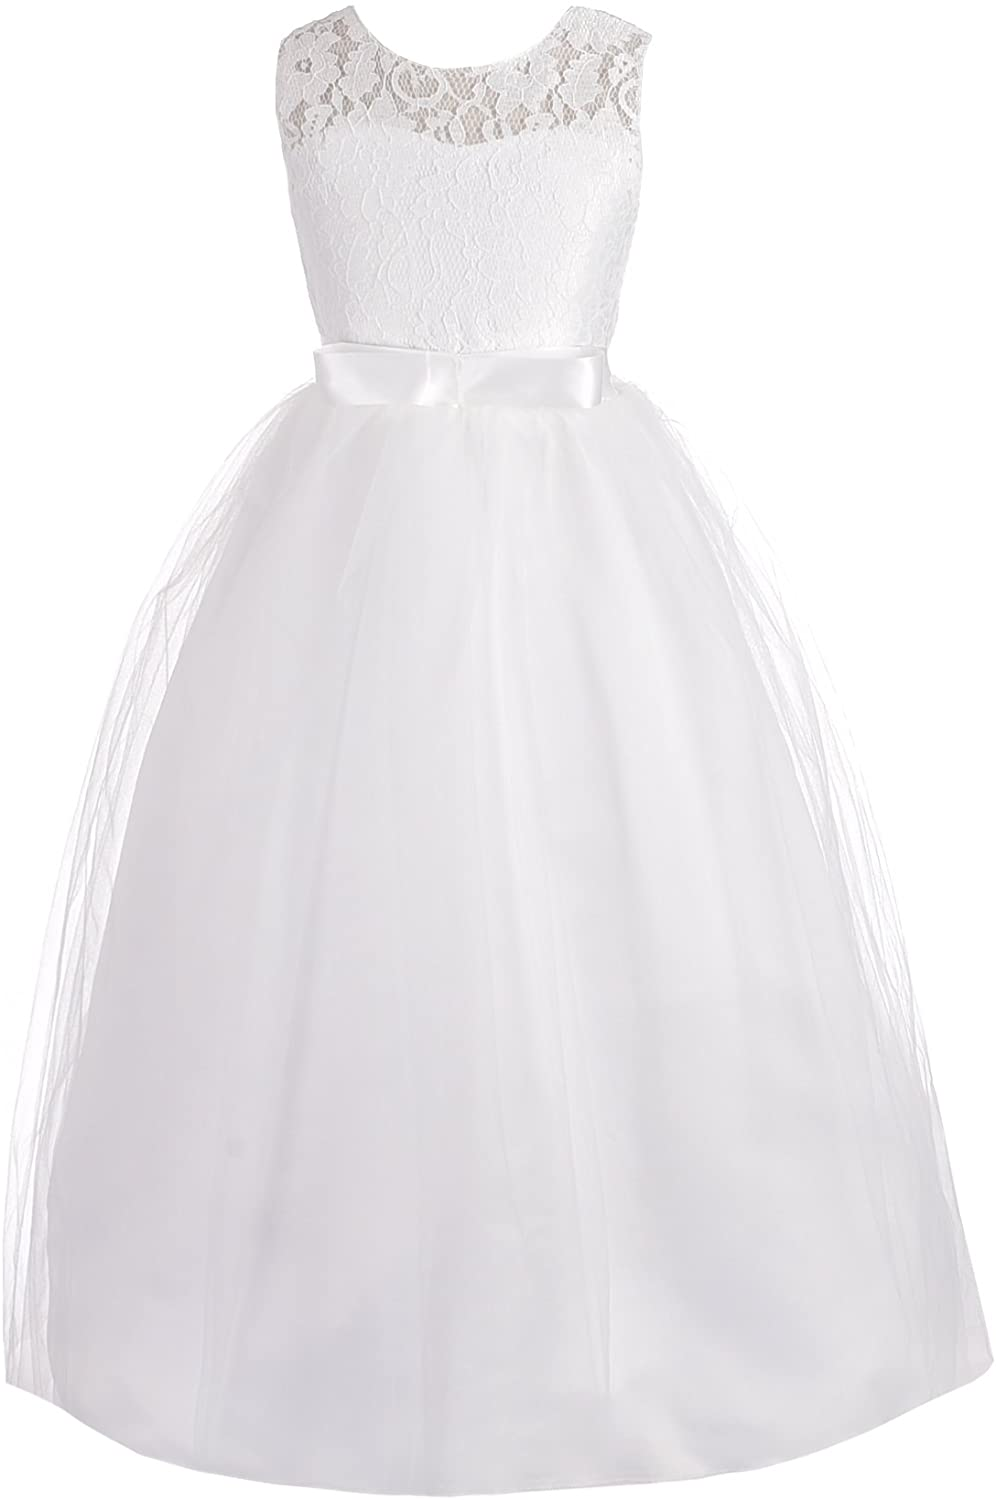 Dressy Daisy Girls Pageant Wedding Flower Girl Dresses Lace Ball Gown Floor Length